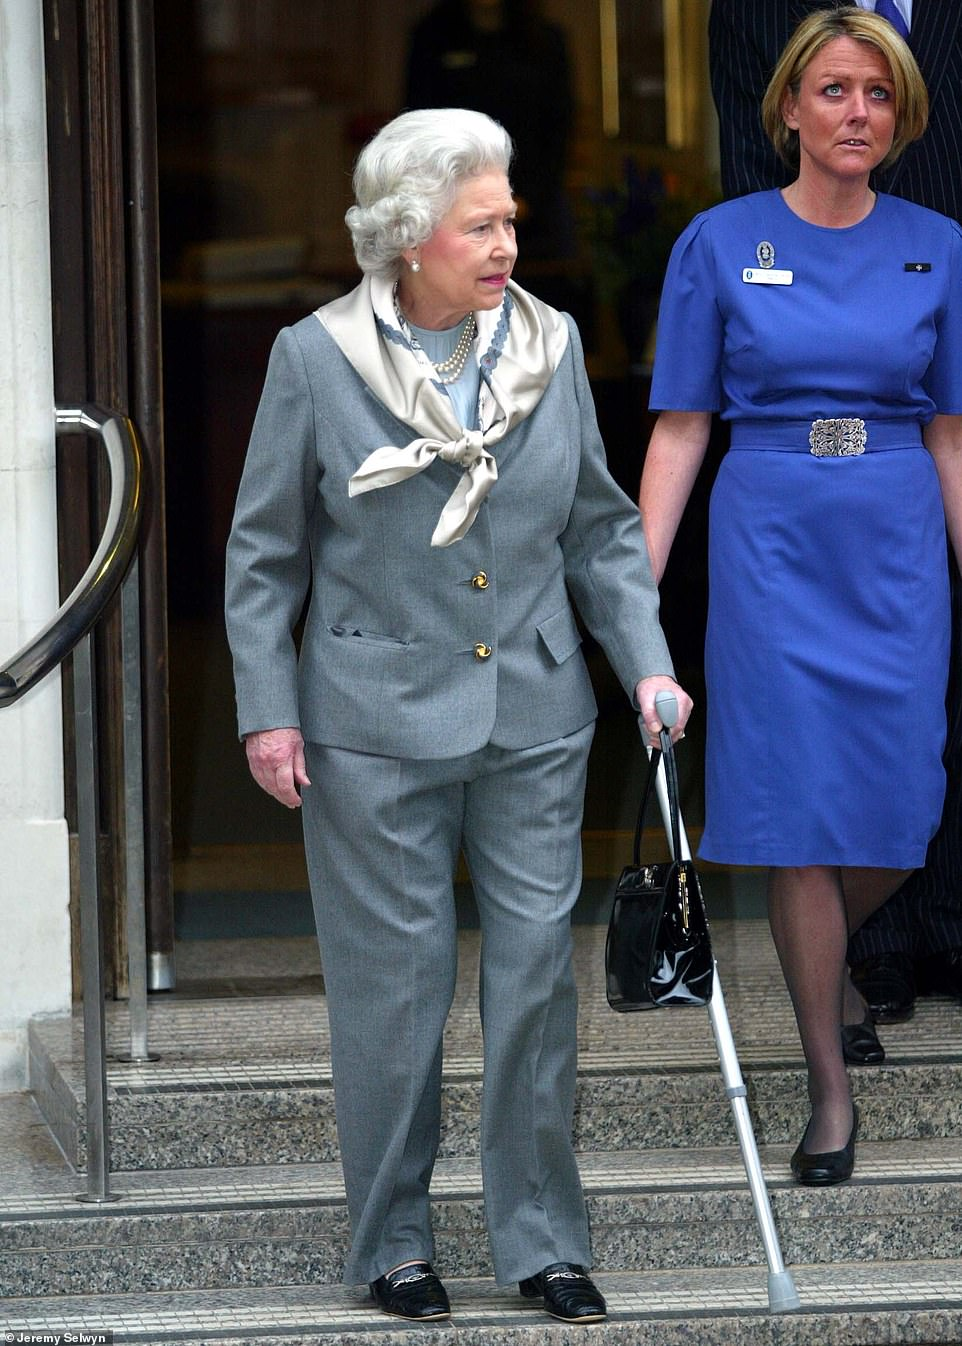 The Queen walks with a stick as she leaves King Edward VII Hospital in January 2003 after surgery to remove a torn cartilage